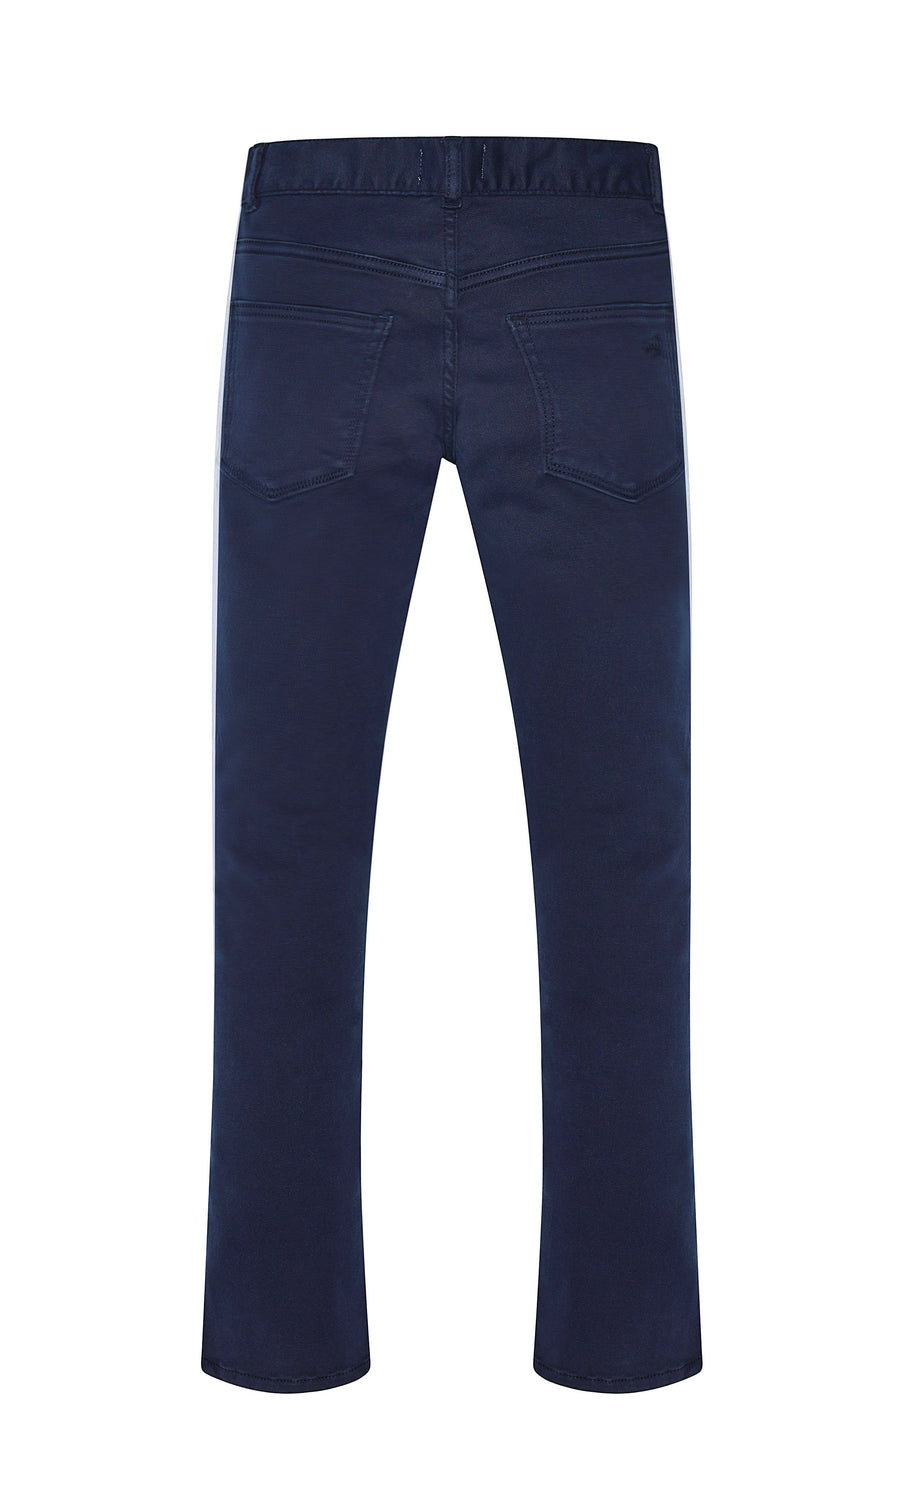 DL1961-Brady Slim Denim - Dark Sapphire Pants DL1961